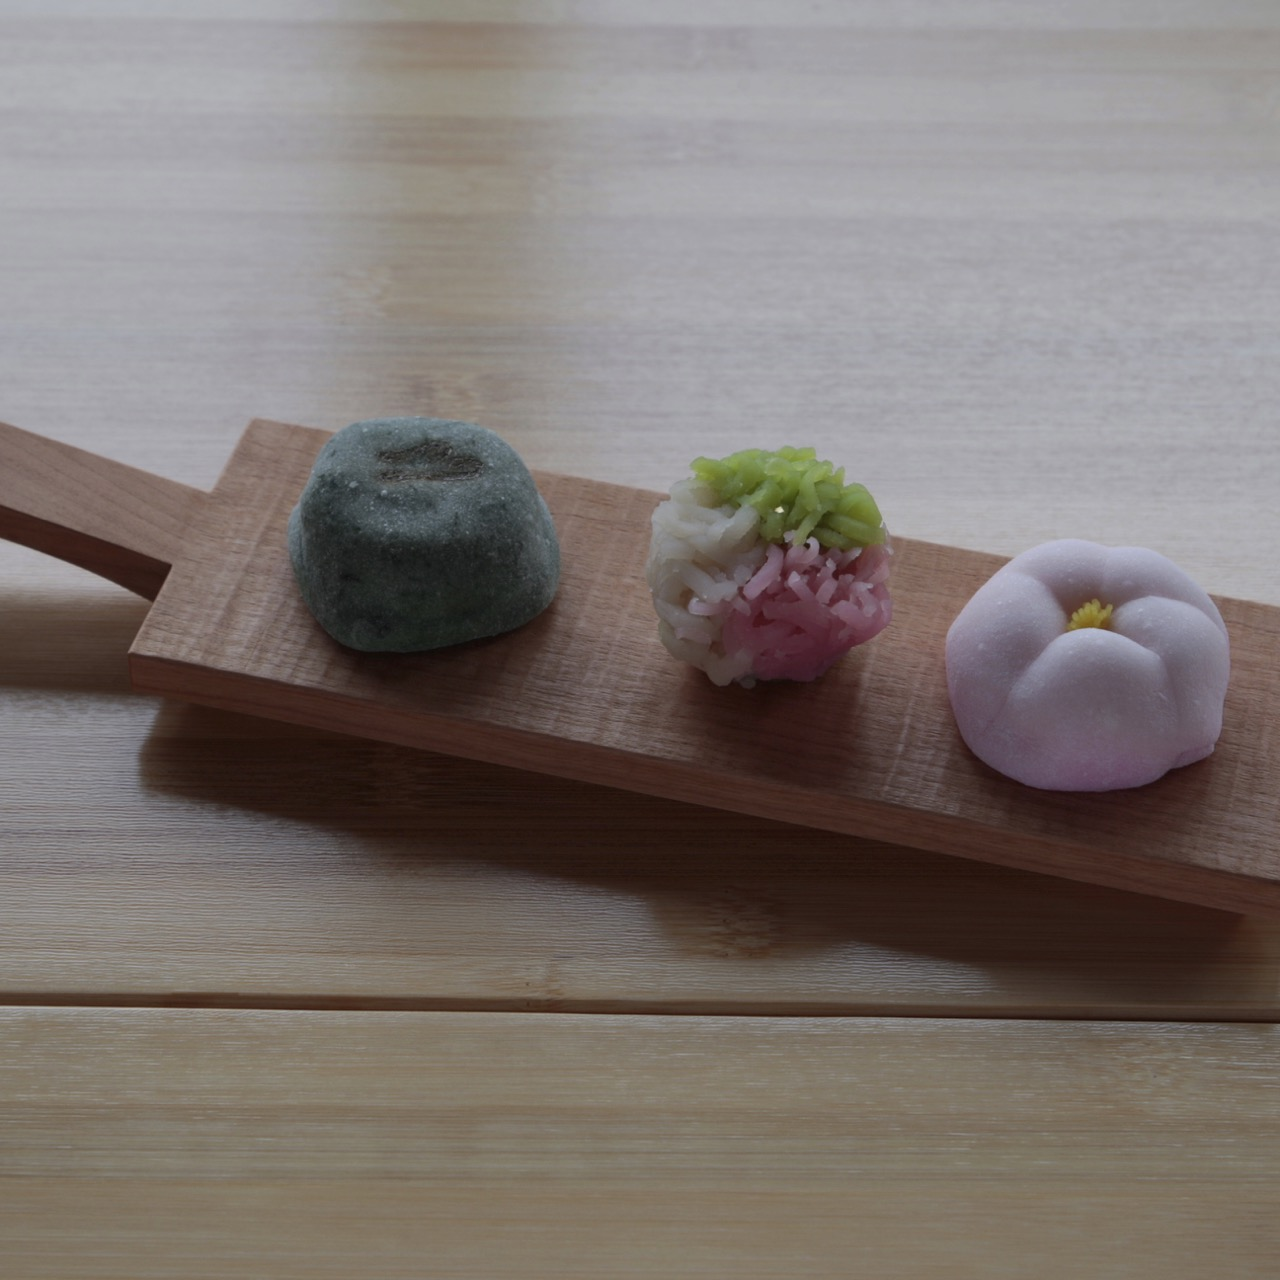 Cutting Board with Japanese Sweets